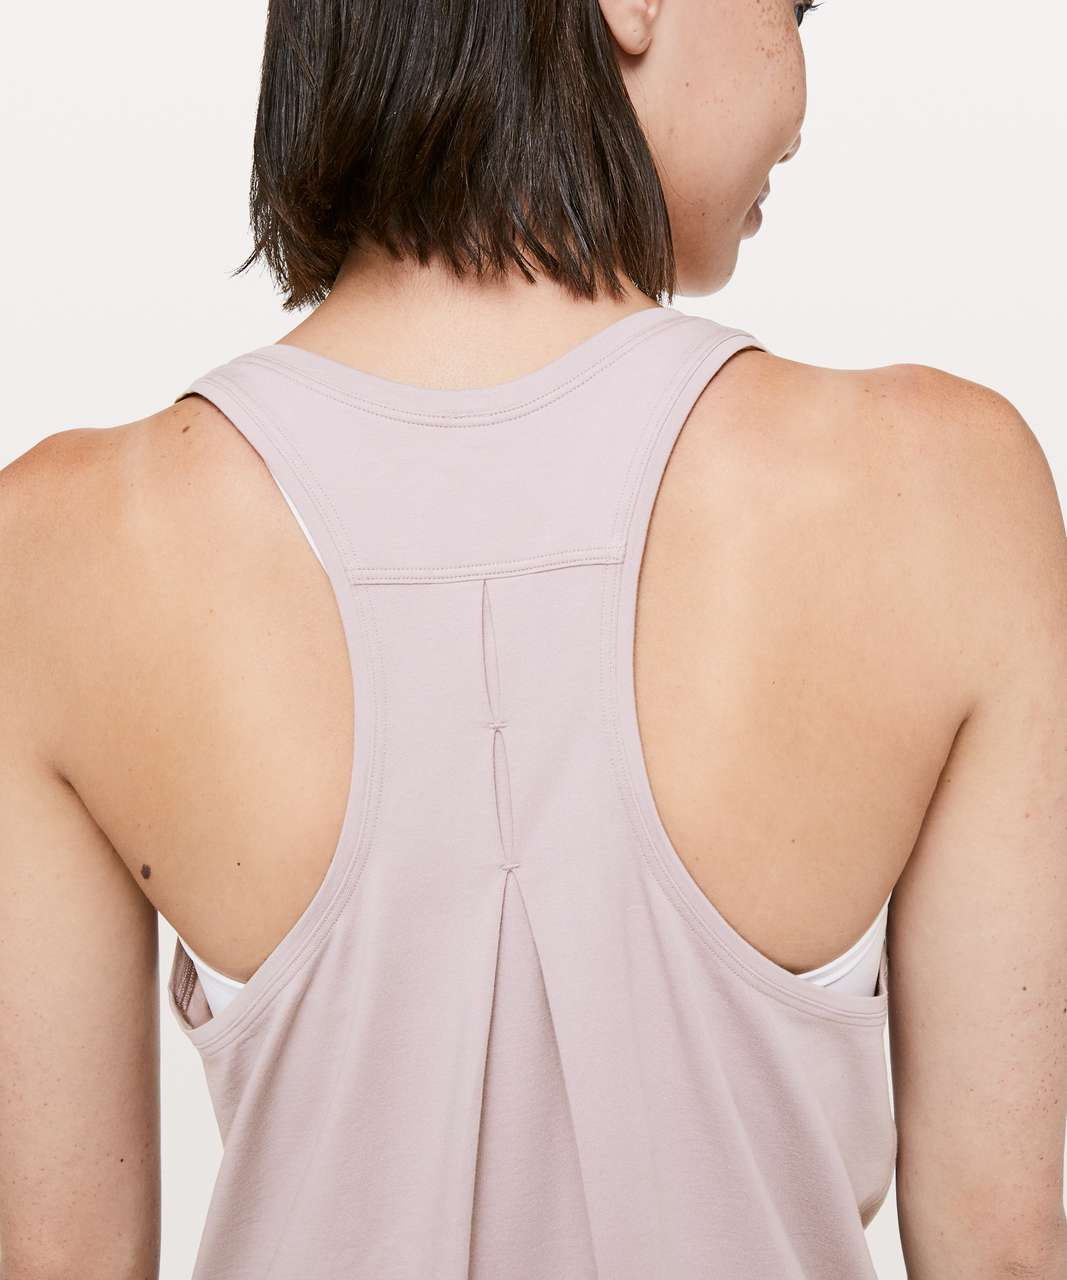 Lululemon Love Tank *Pleated - Smoky Blush